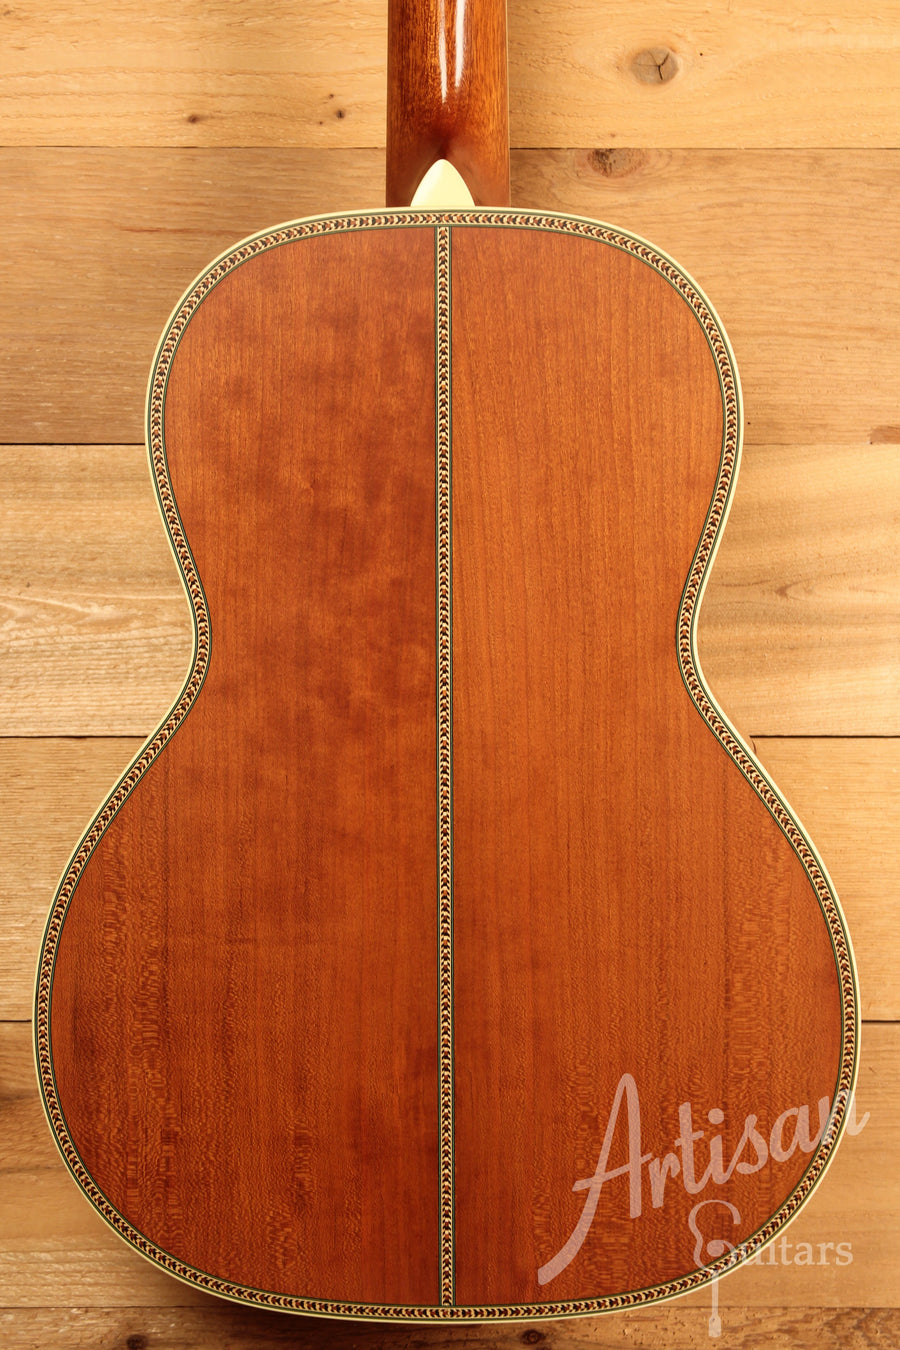 Waterloo WL-S DLX Ladder Braced Guitar Solid Spruce and Cherry ID-11457 - Artisan Guitars